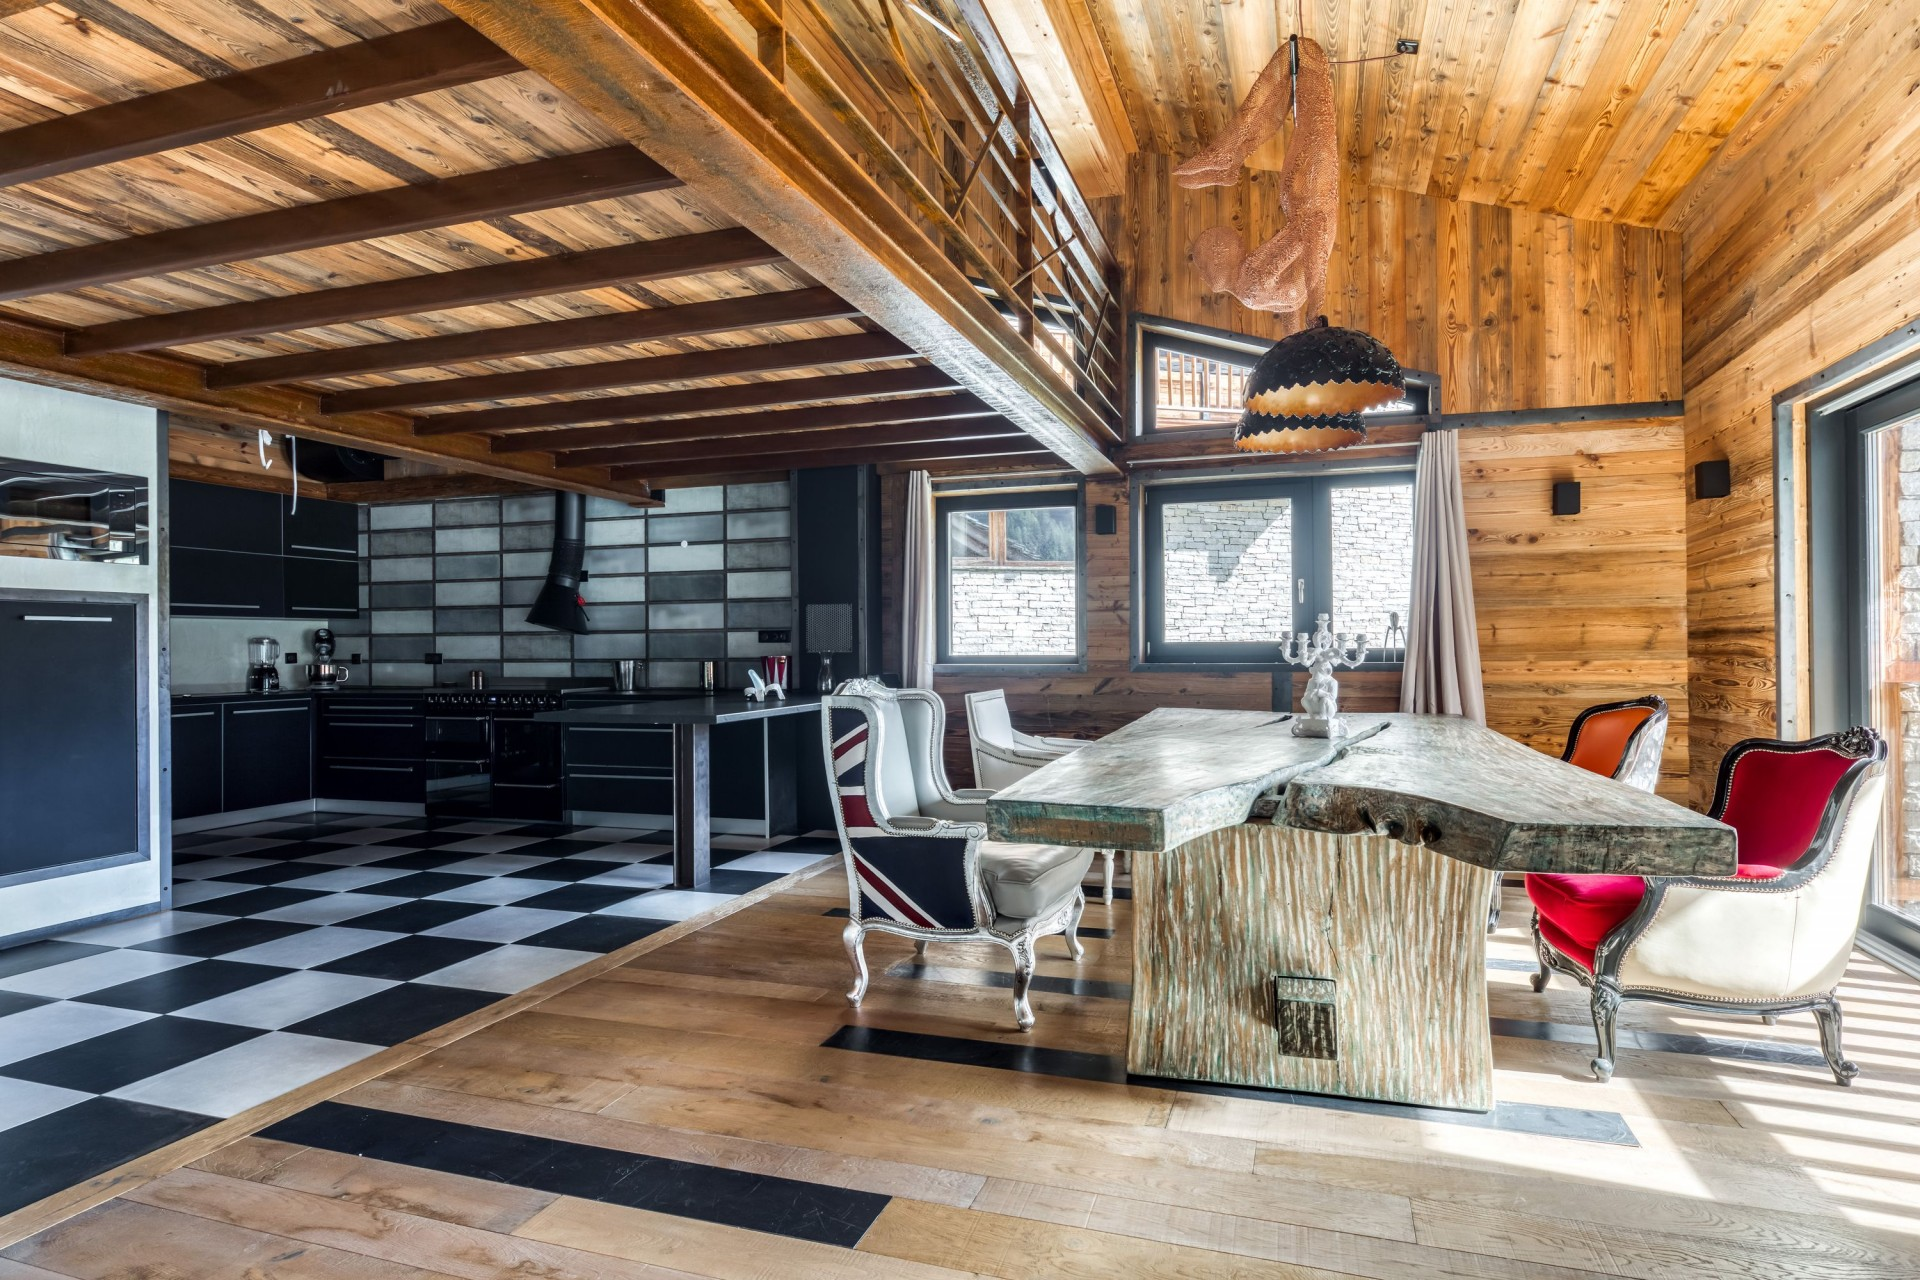 Tignes Location Chalet Luxe Tecala Salle A Manger